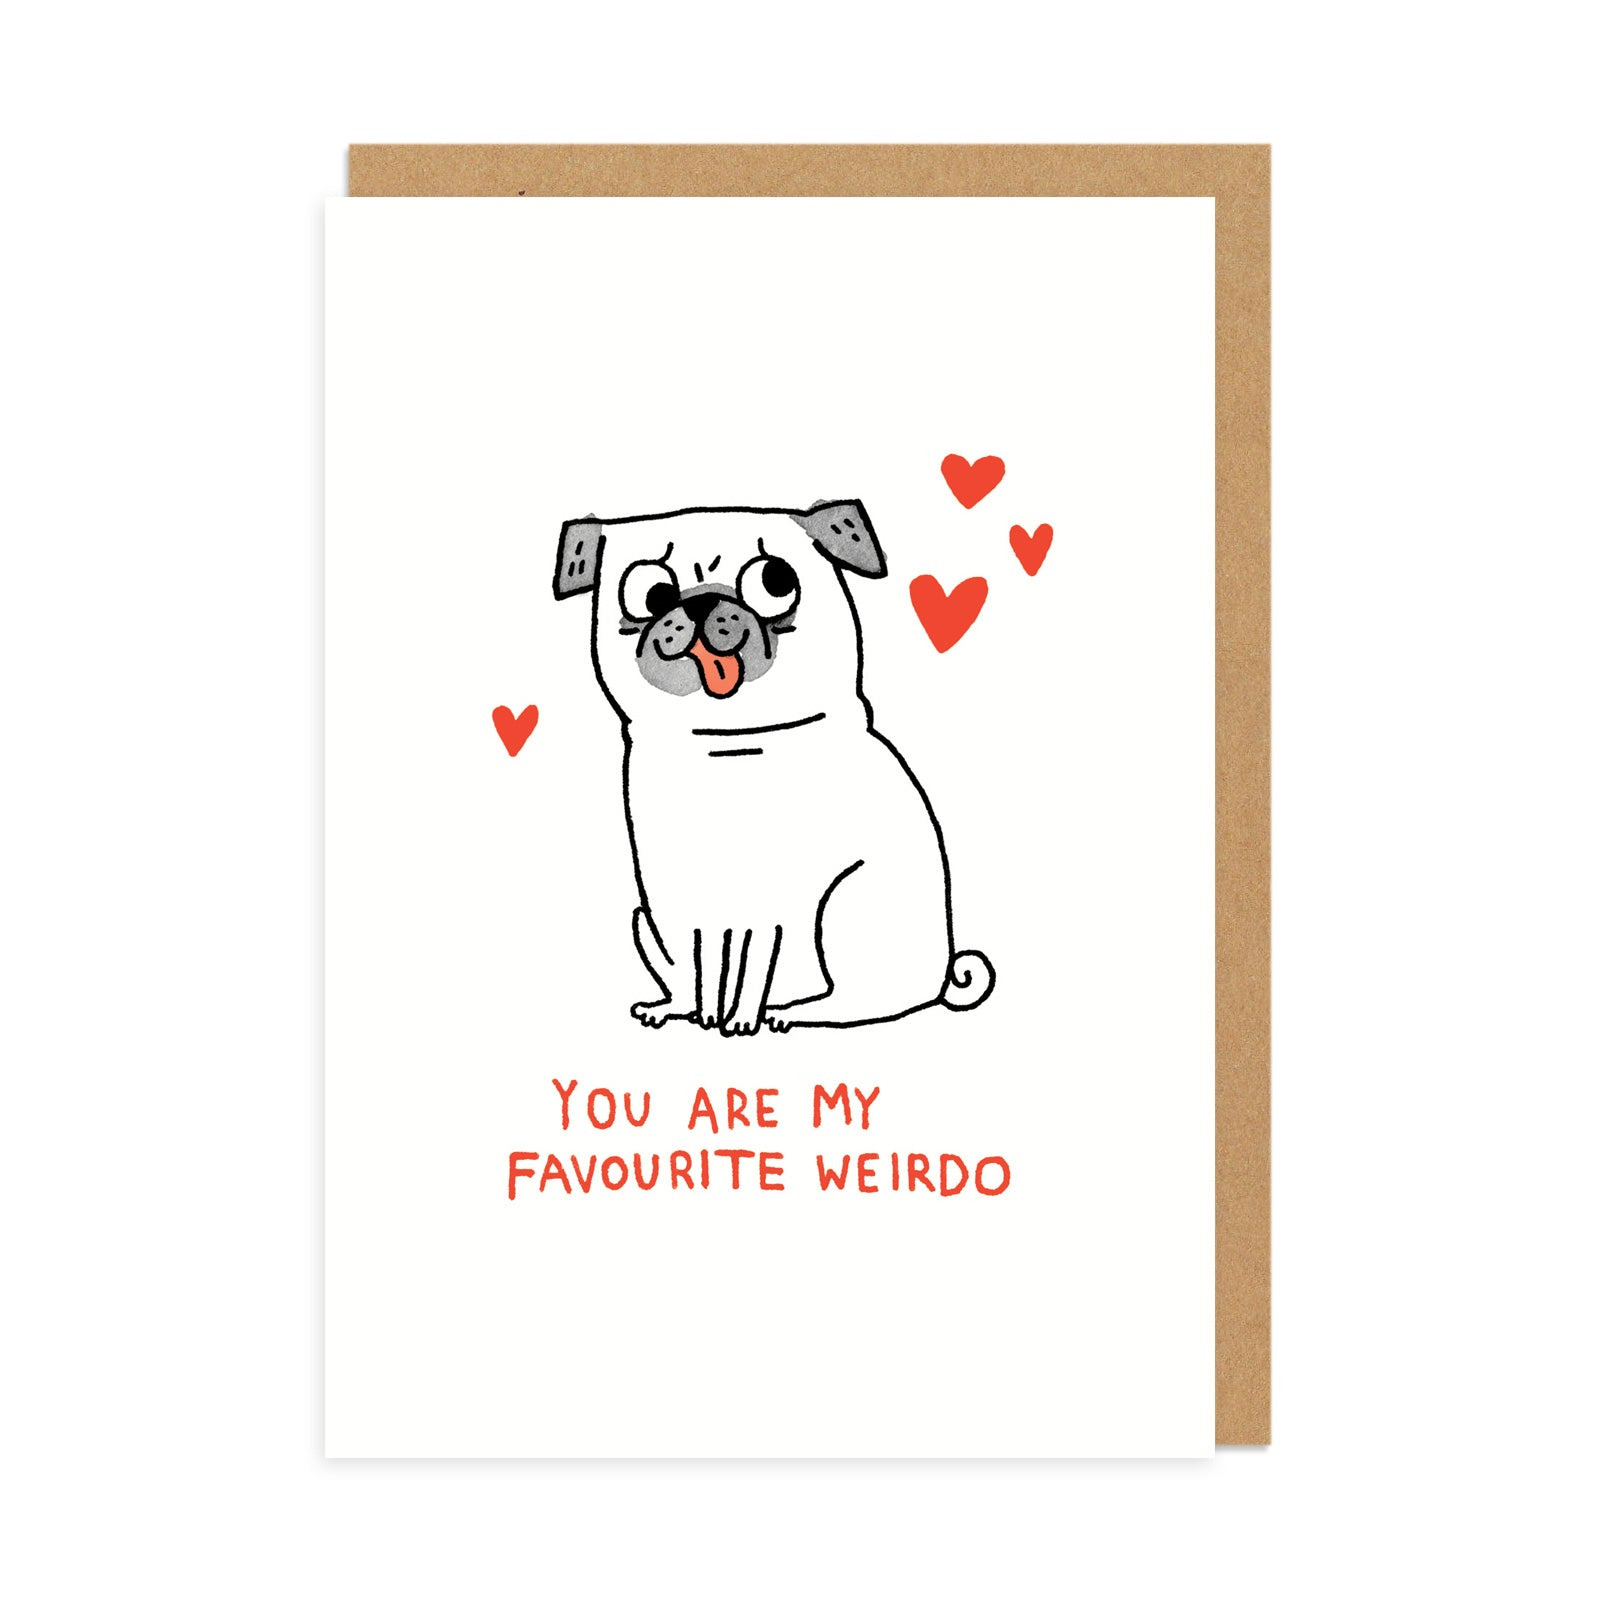 Favourite Weirdo Greeting Card